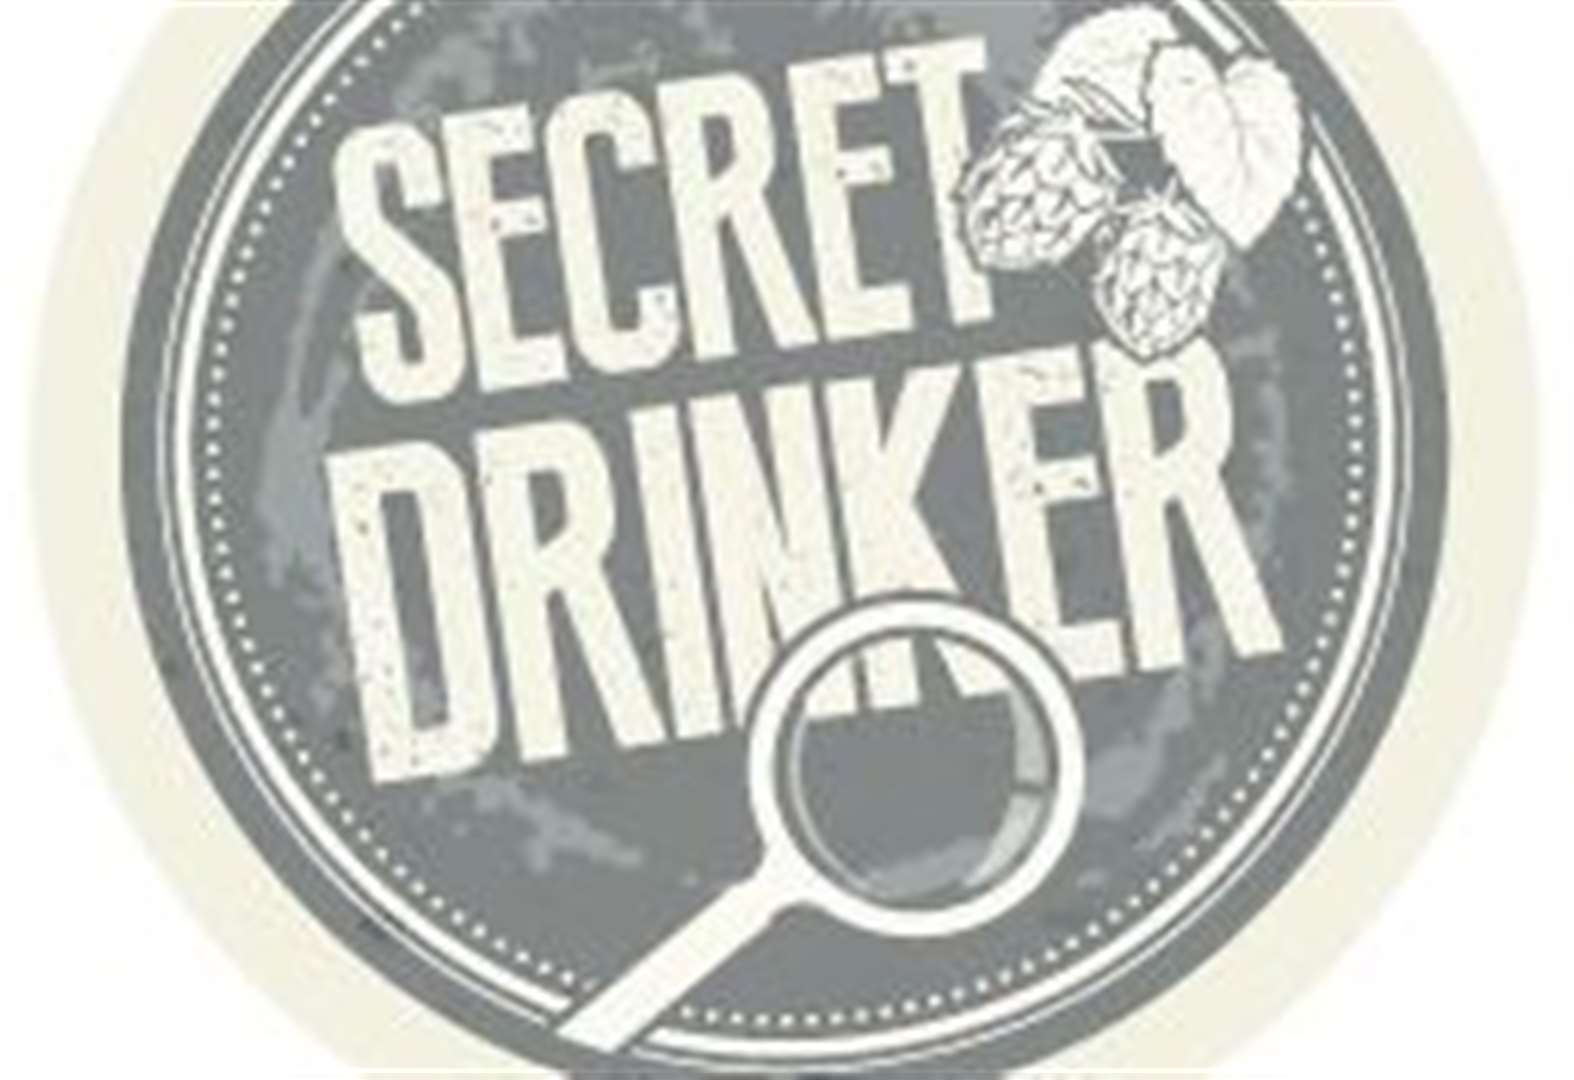 Secret Drinker reviews the Black Horse